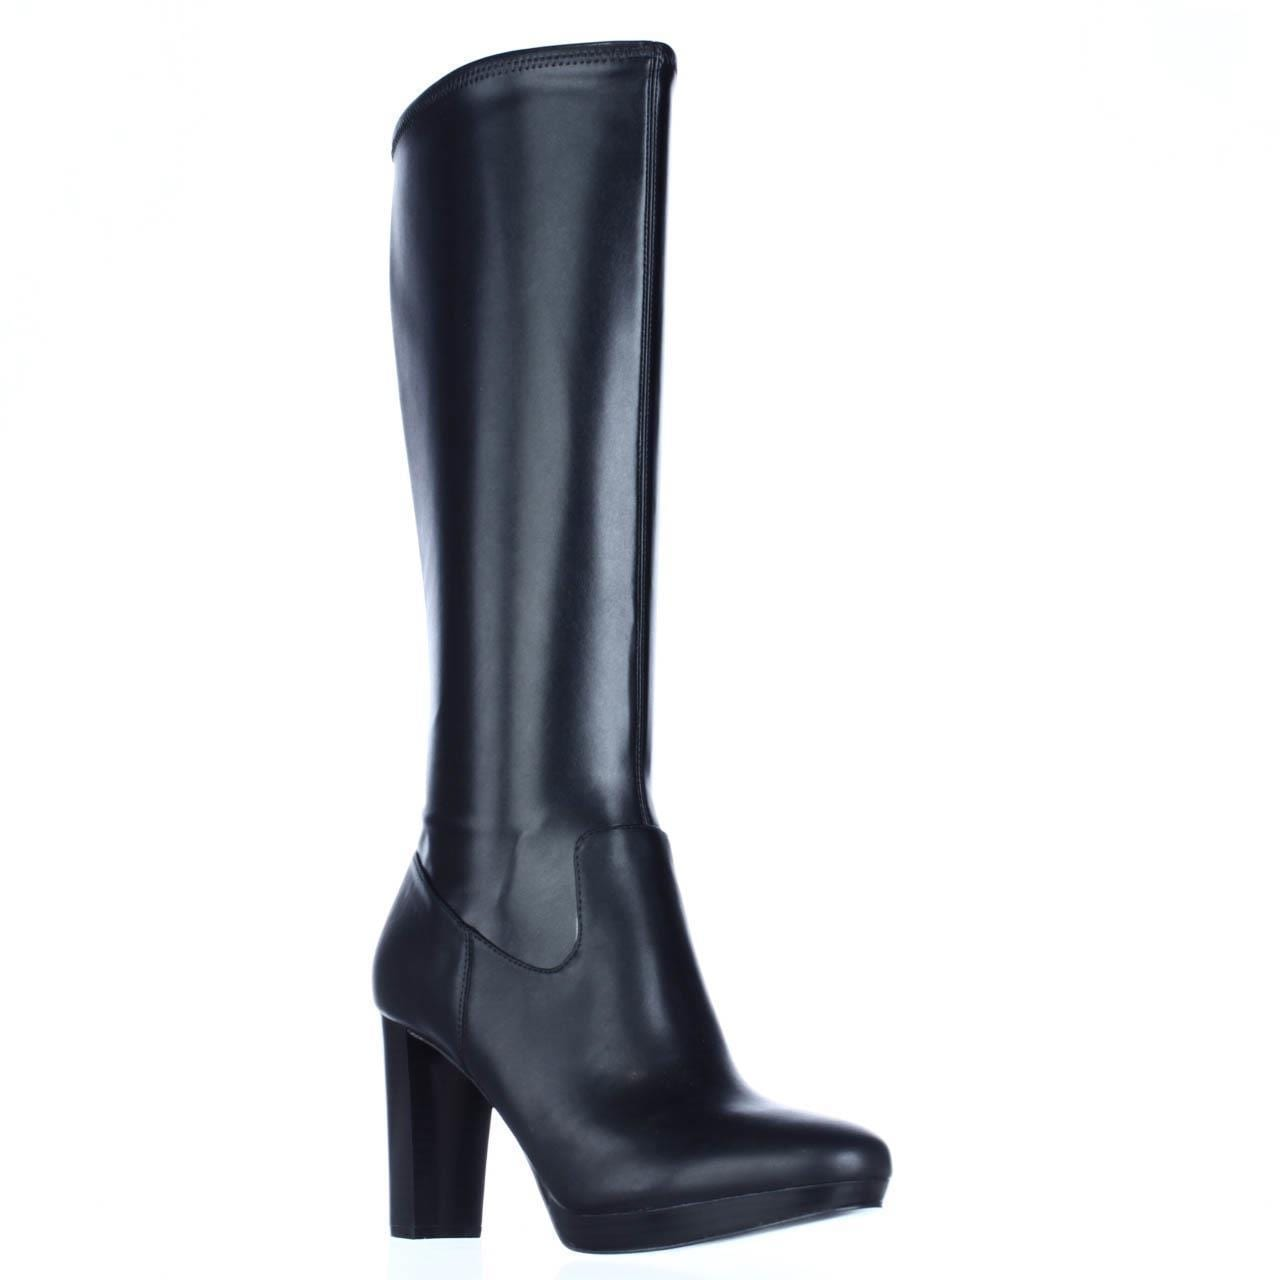 6a937adb7e684 Buy Nine West Women's Boots Online at Overstock | Our Best Women's ...